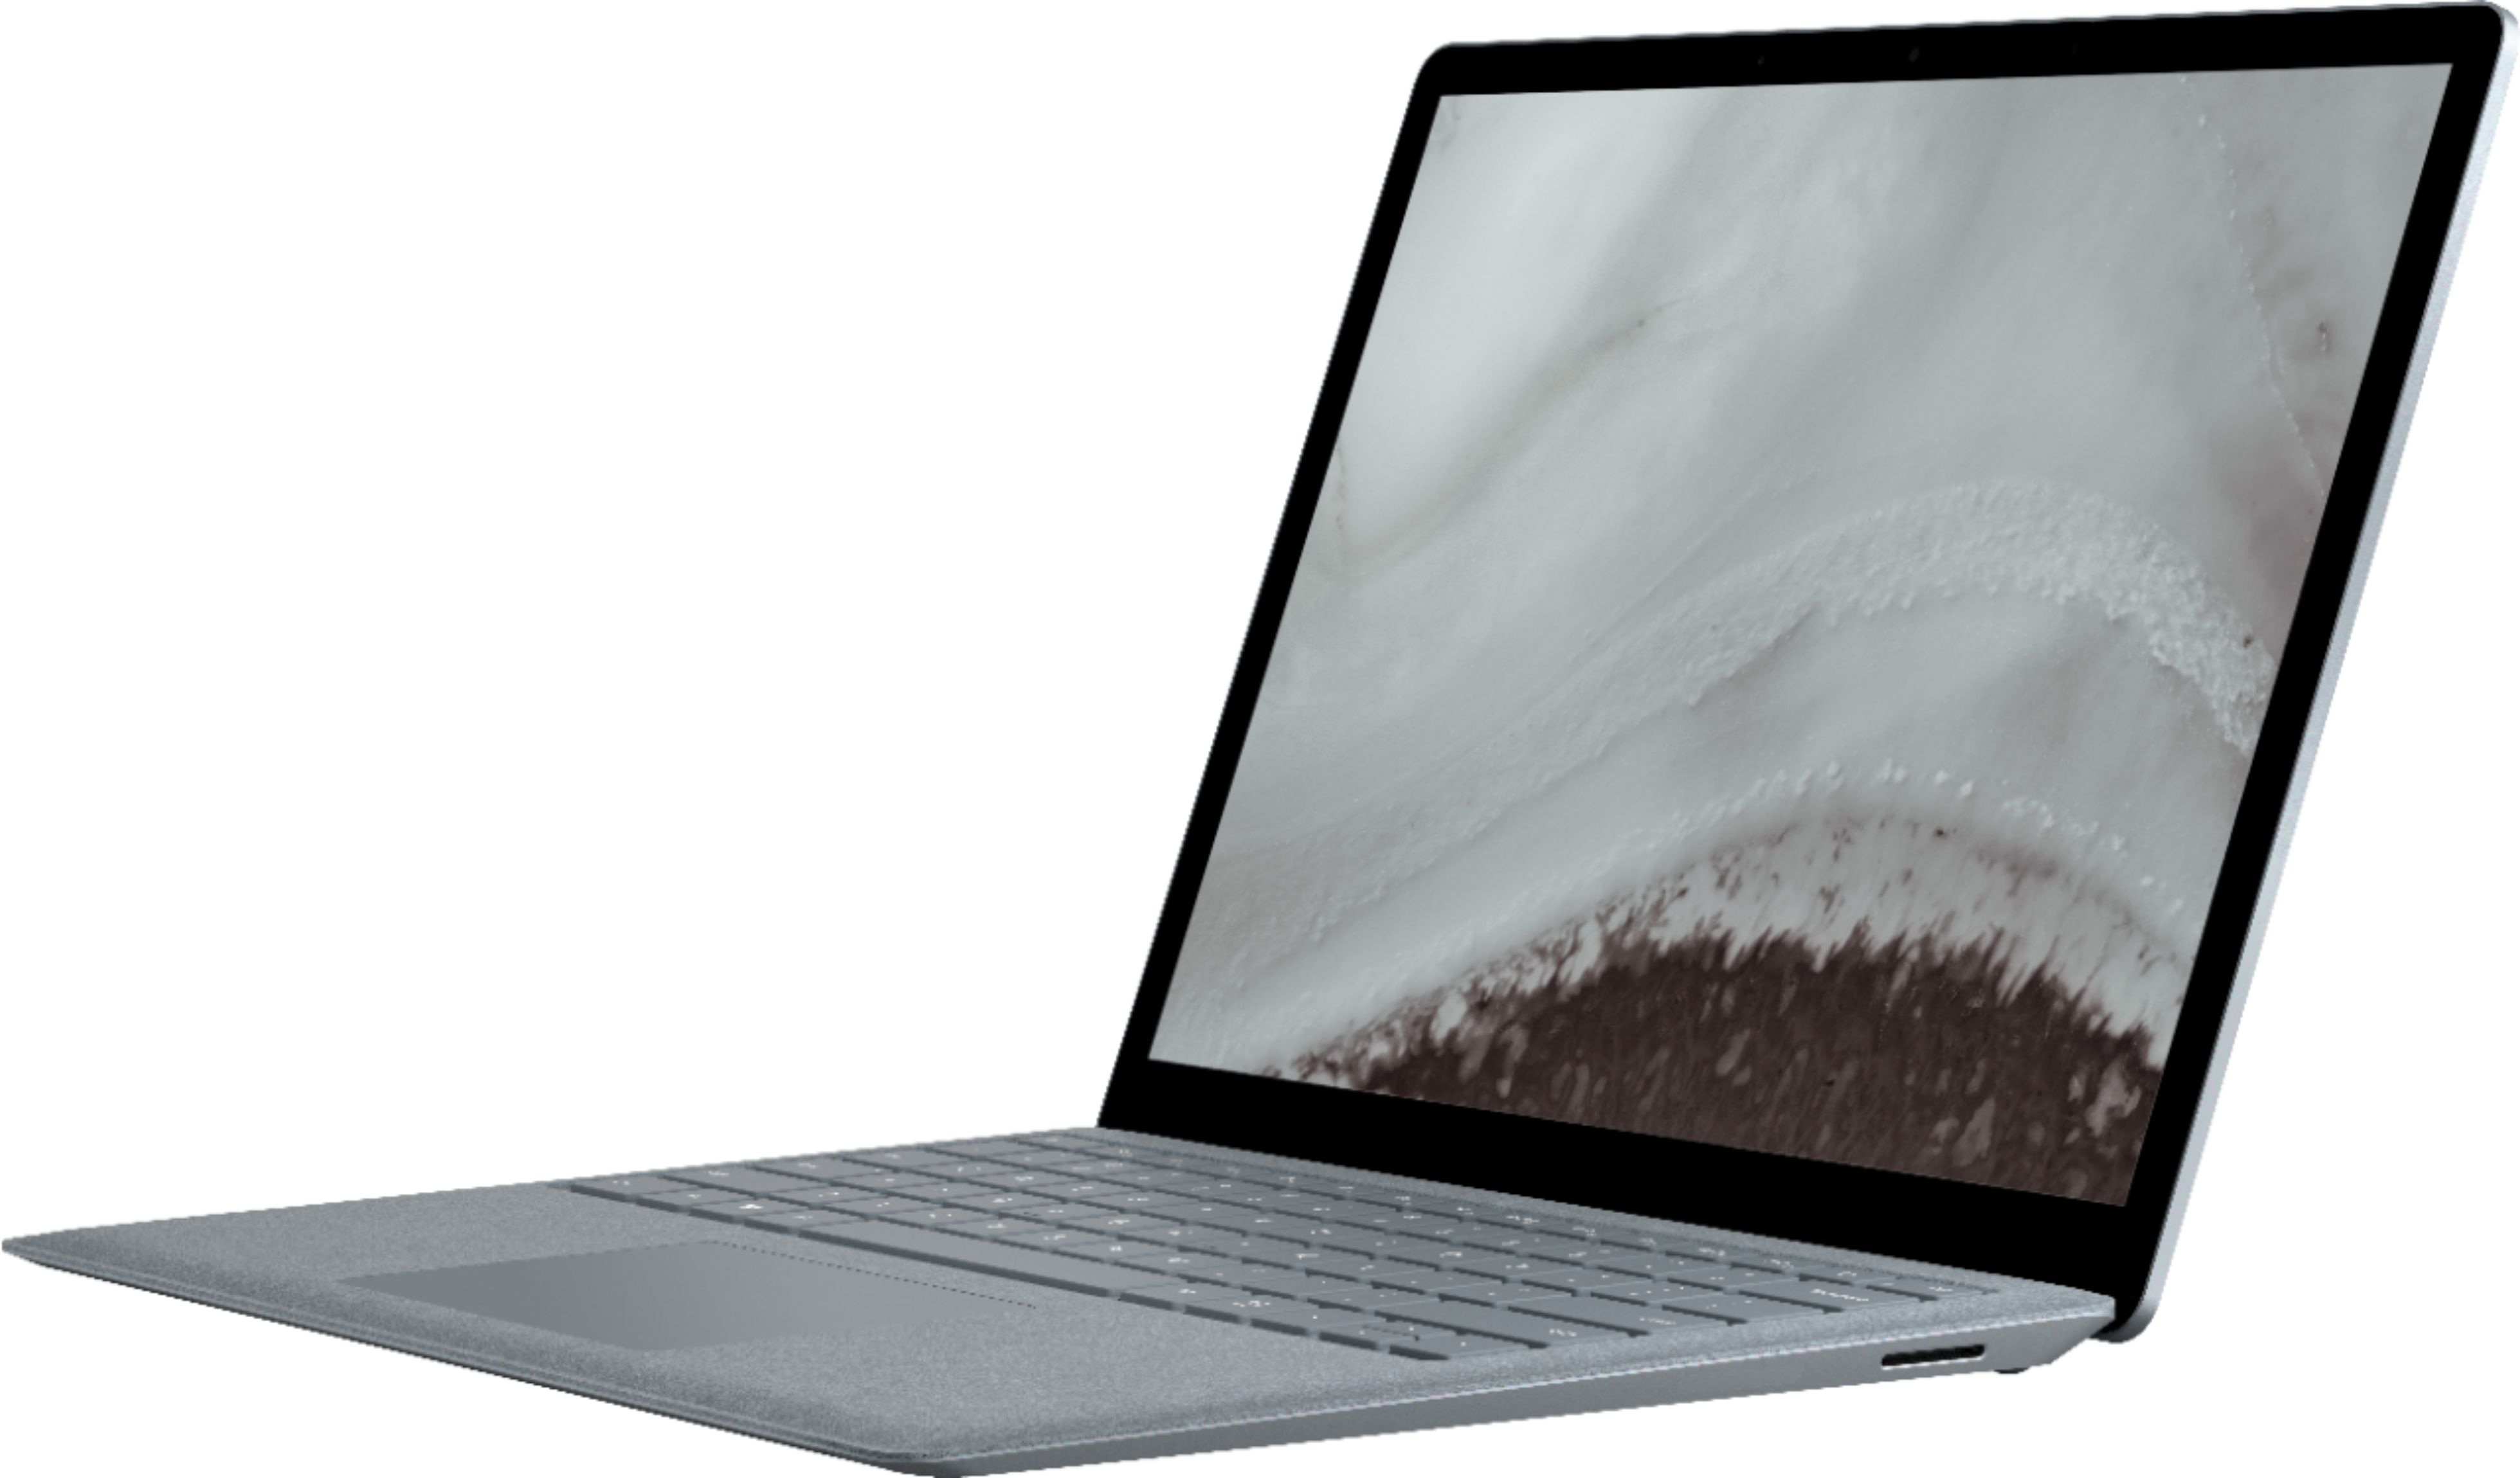 """Front Zoom. Microsoft - Geek Squad Certified Refurbished Surface Laptop 2 - 13.5"""" Touch Screen - Intel Core i5 - 8GB - 128GB SSD - Platinum."""